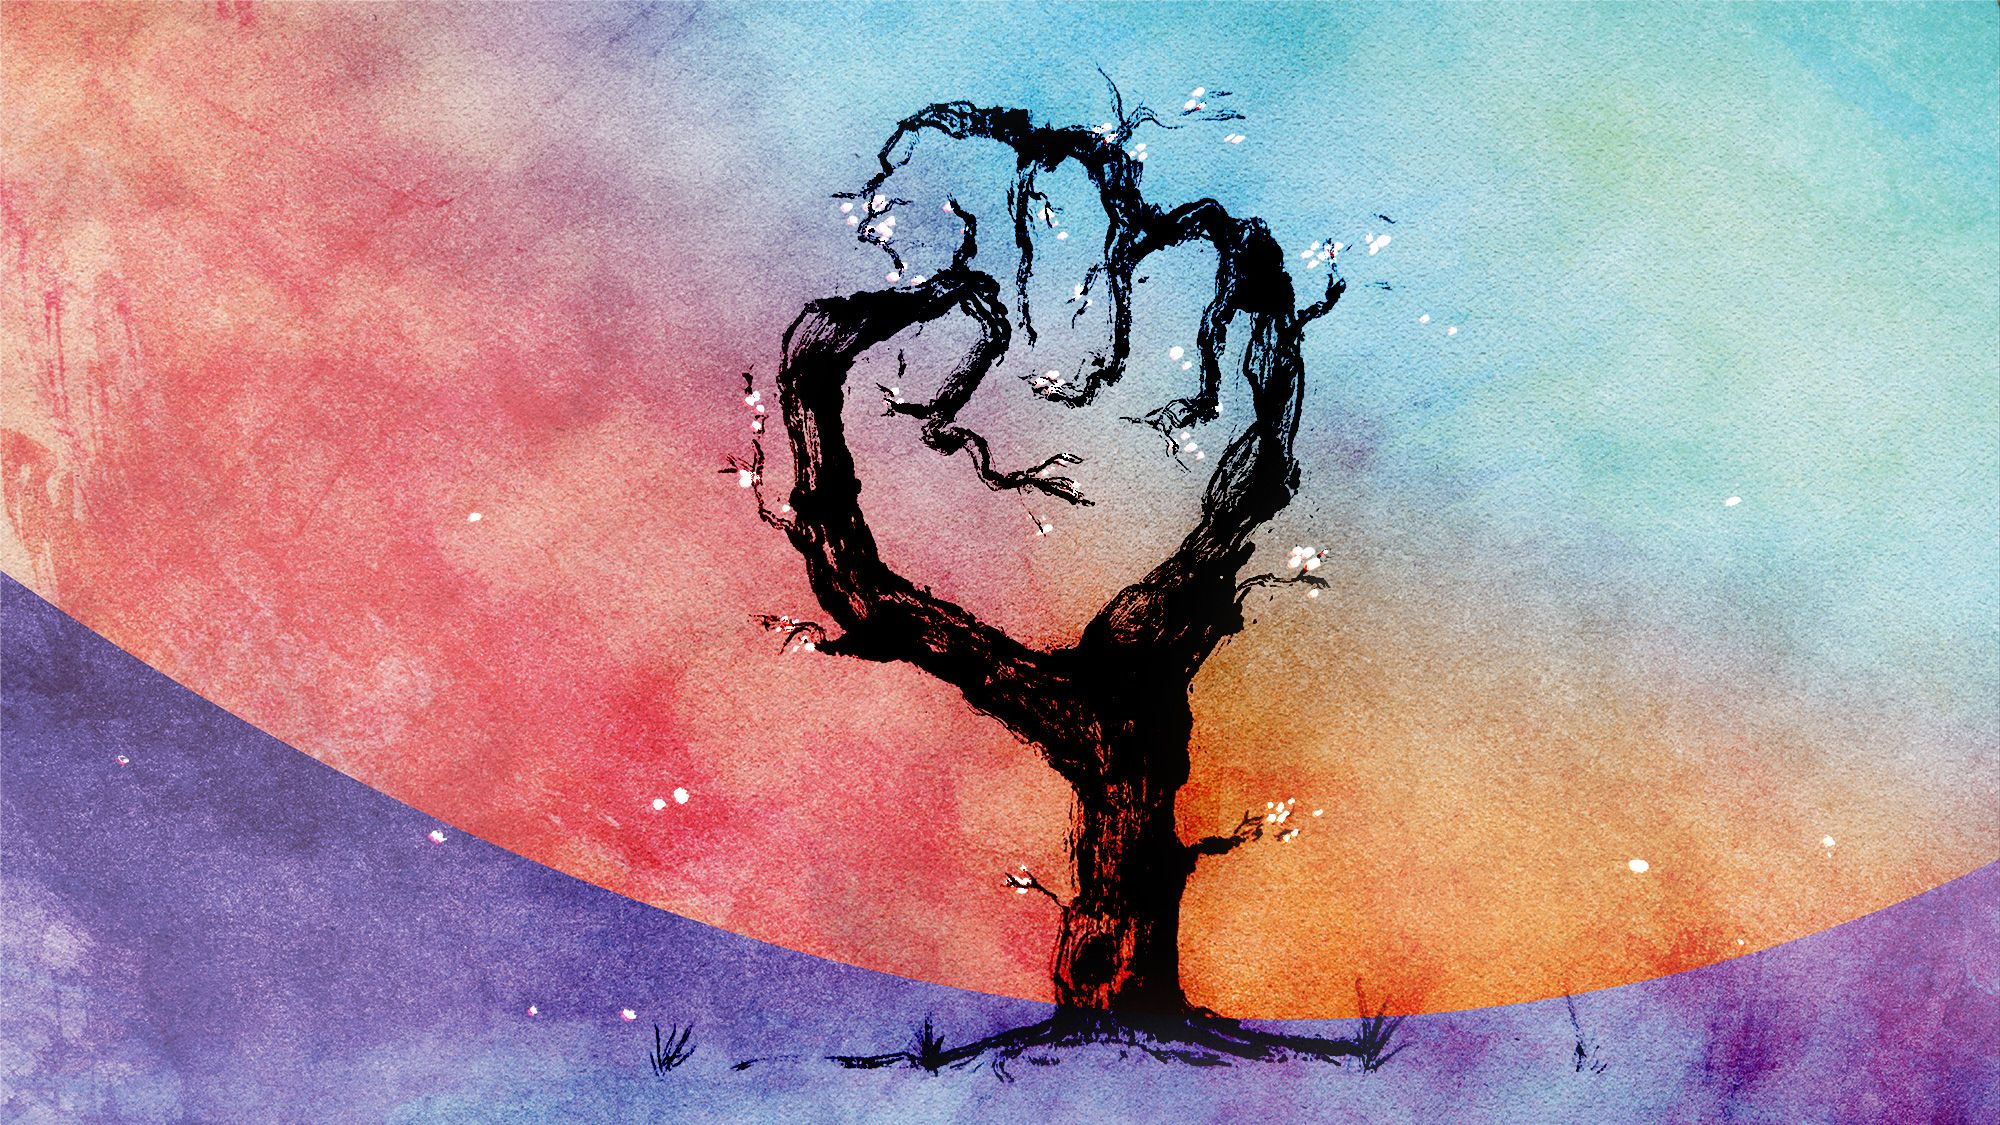 Abstract tree with branches shaped in a fist with white blossoms and a multi-color watercolor background.